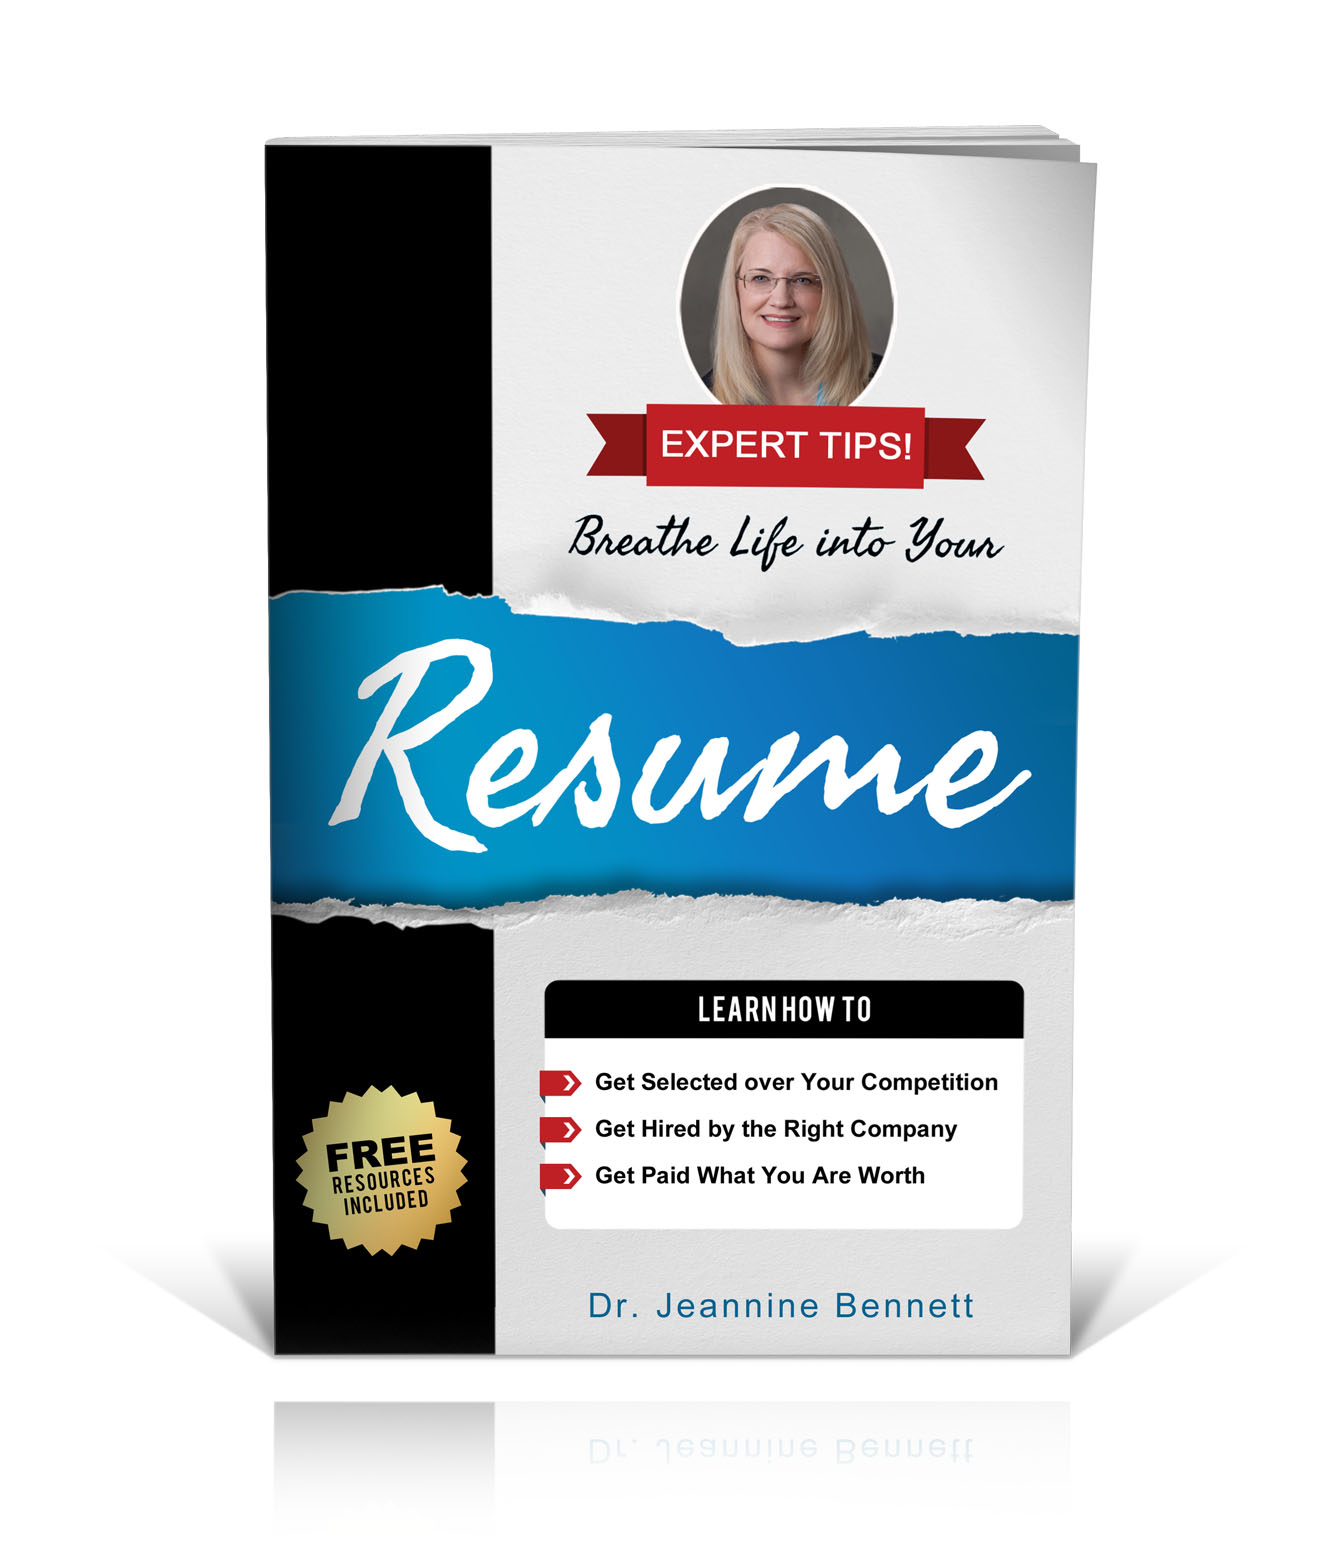 Breathe Life into Your Resume